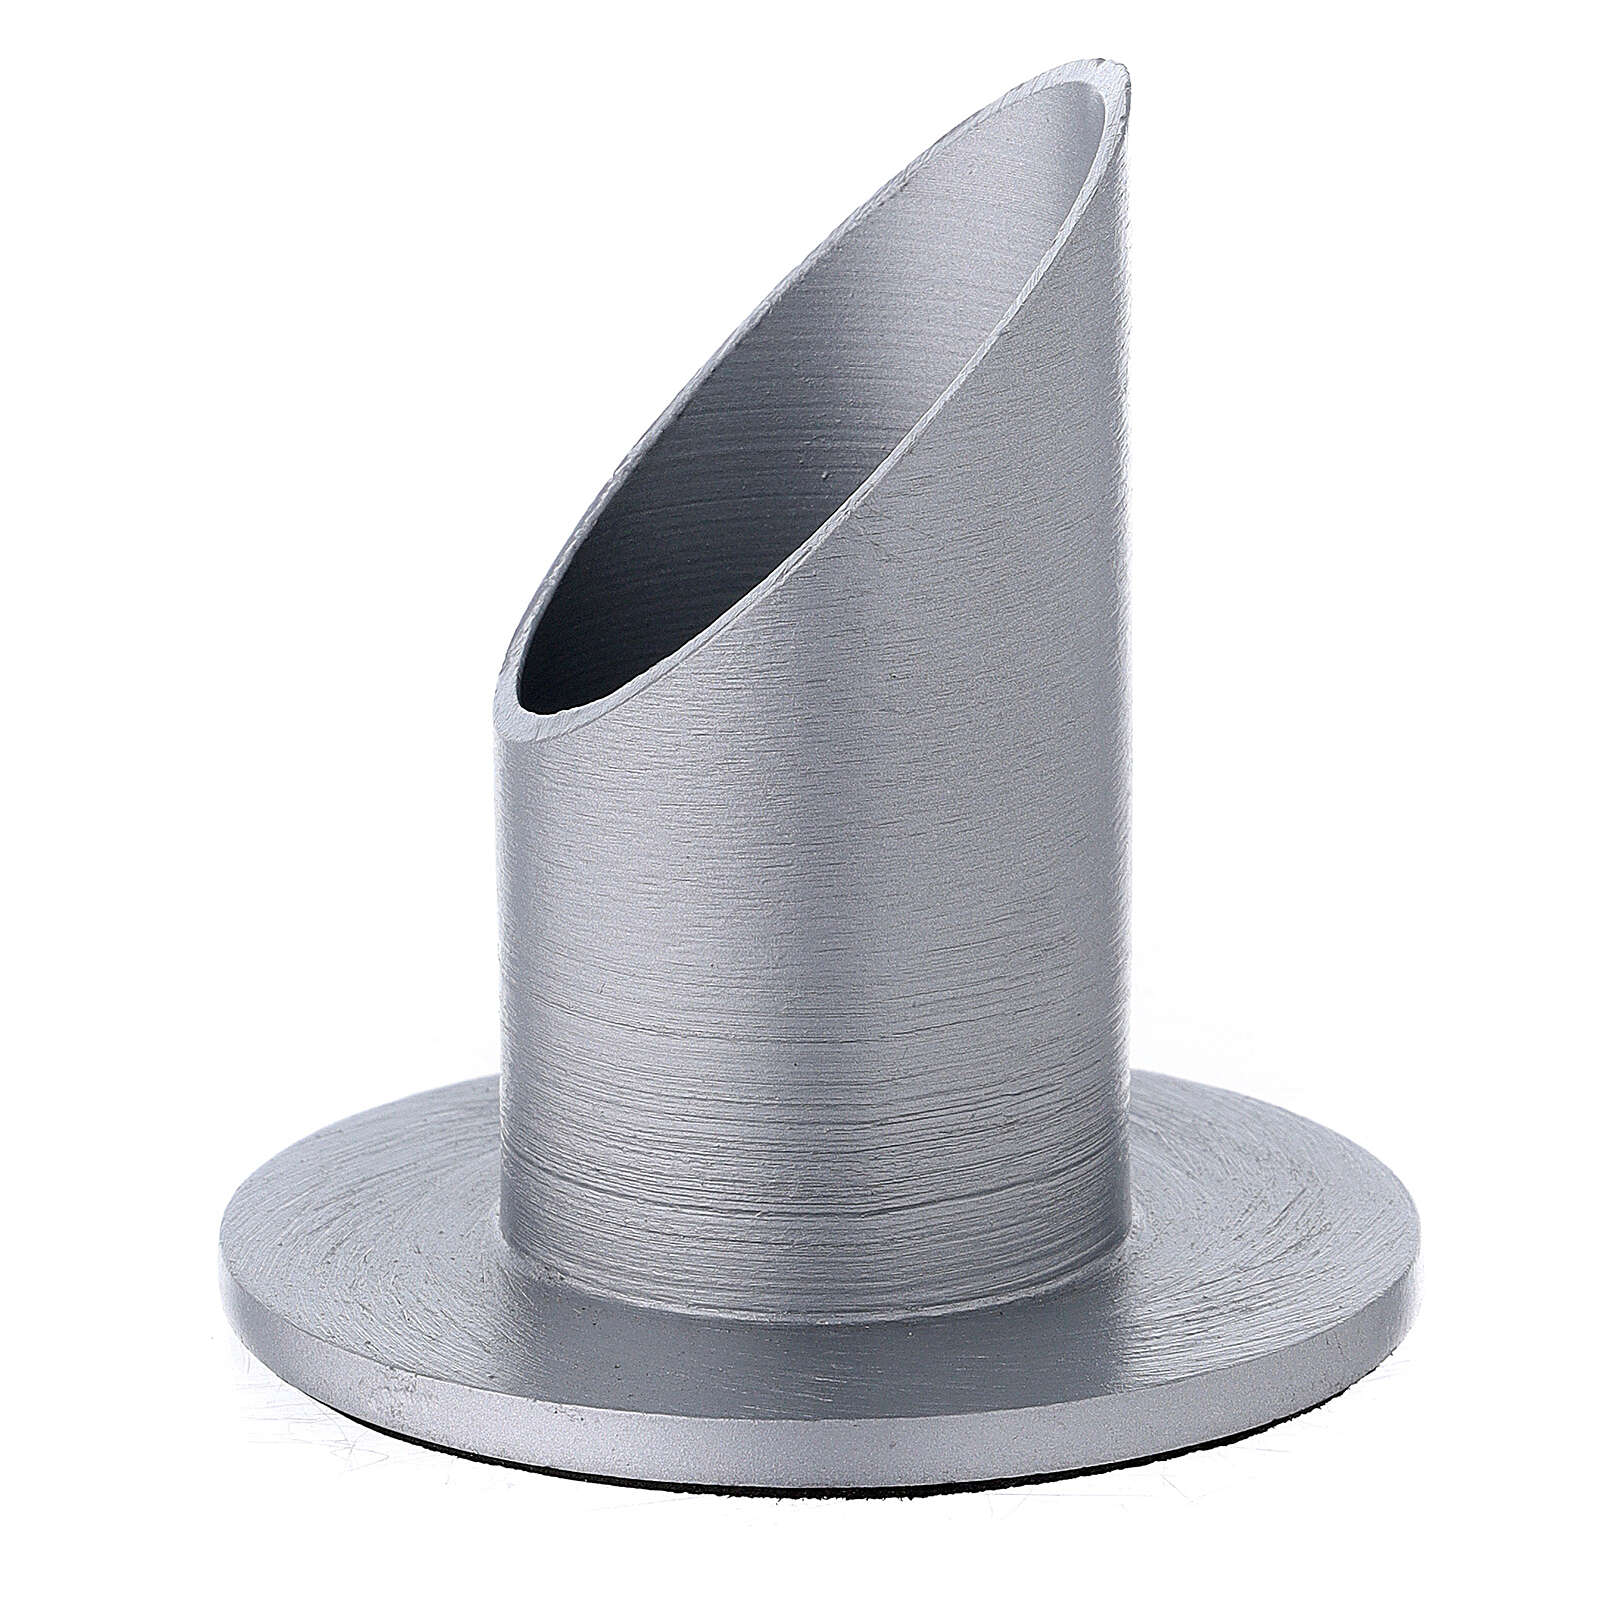 Aluminium candle holder satin finish with mitered socket 1 1/2 in 3